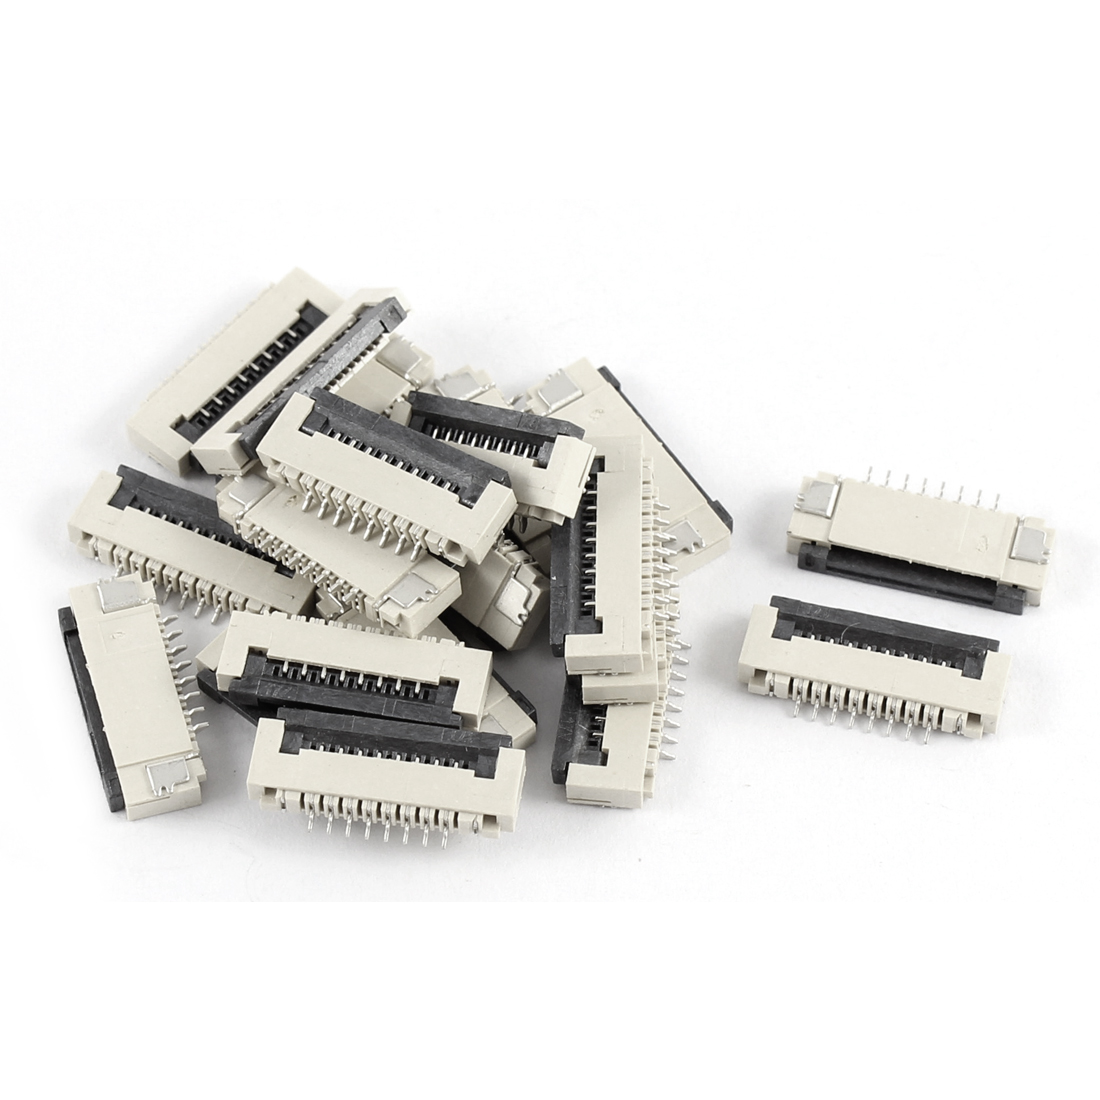 20Pcs Clamshell Type Bottom Port 8Pin 1.0mm Pitch FFC FPC Sockets Connector